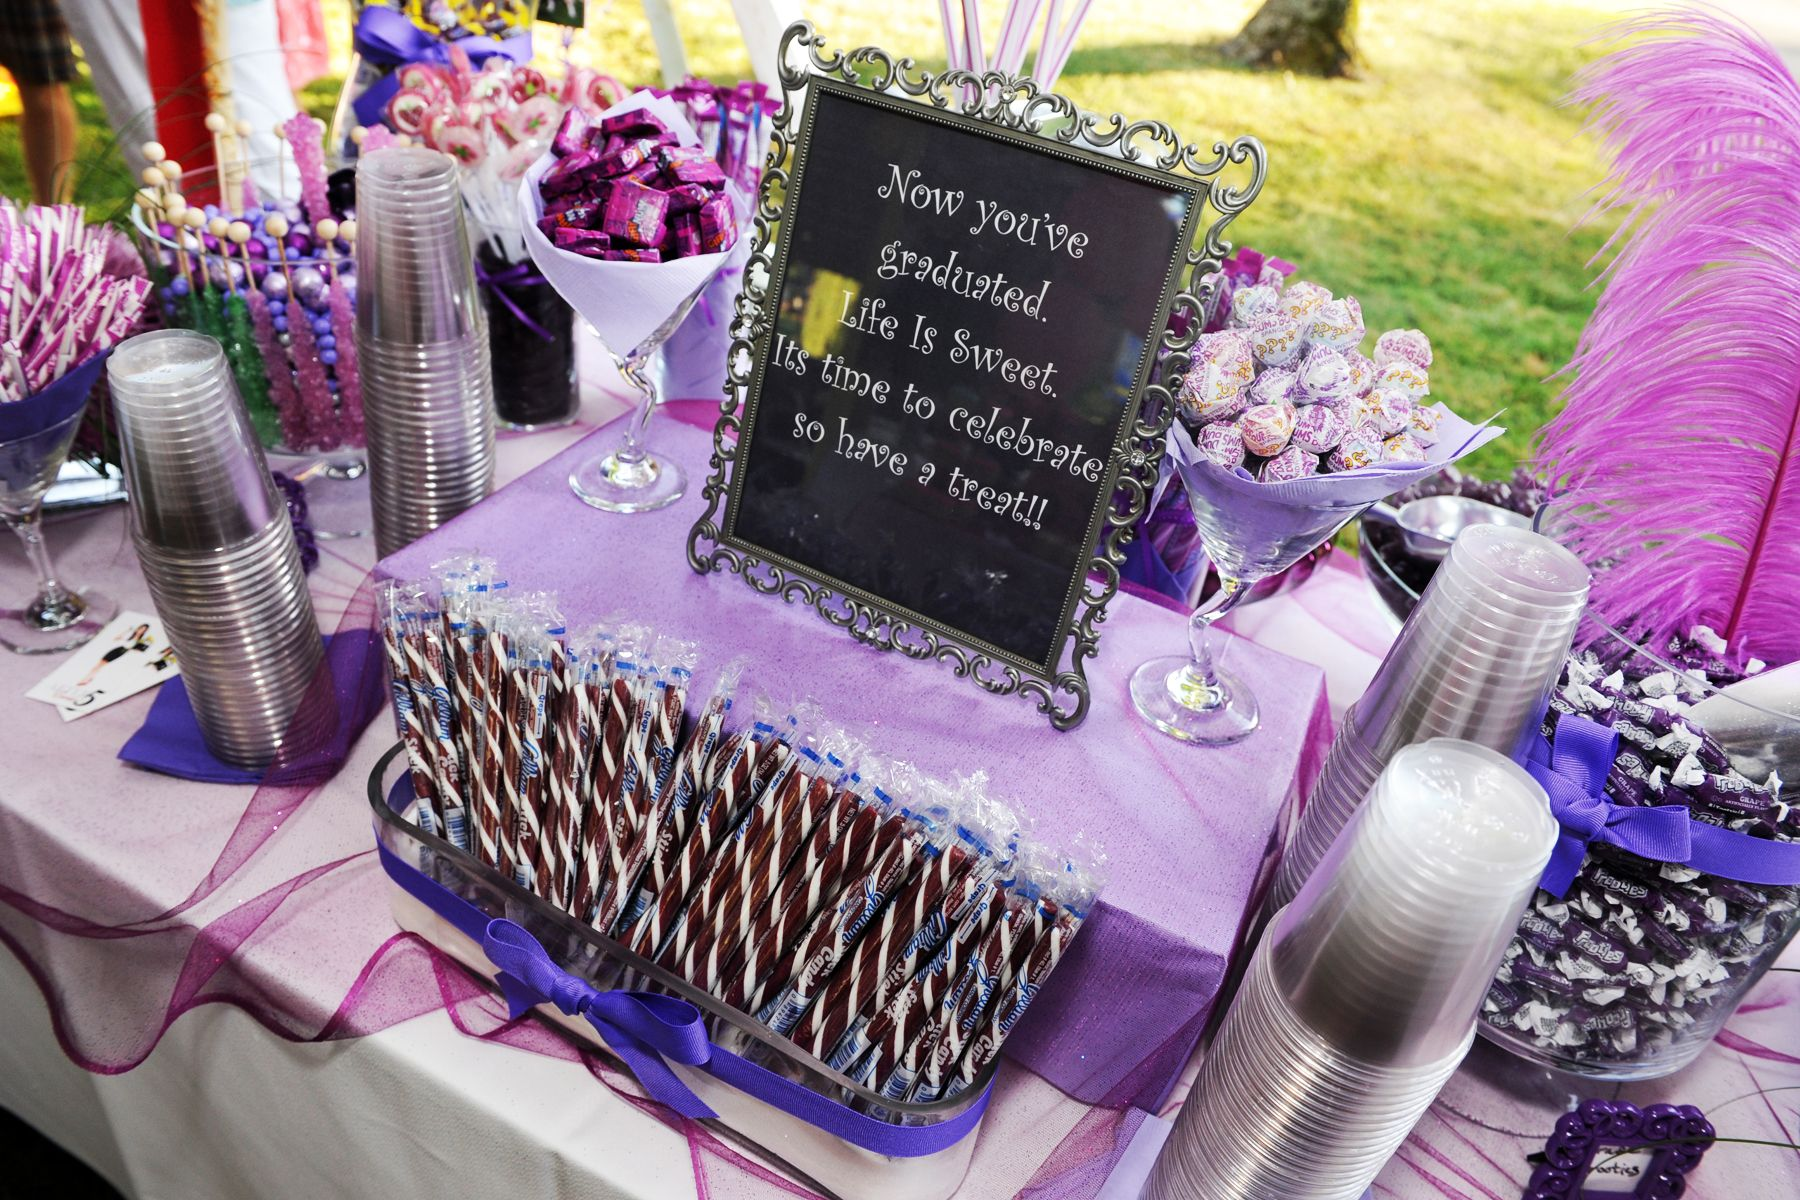 graduation candy buffet after 5 events buffalo ny customcandybuffets purplecandybuffet purplecandytable candy tablecandy buffetparty